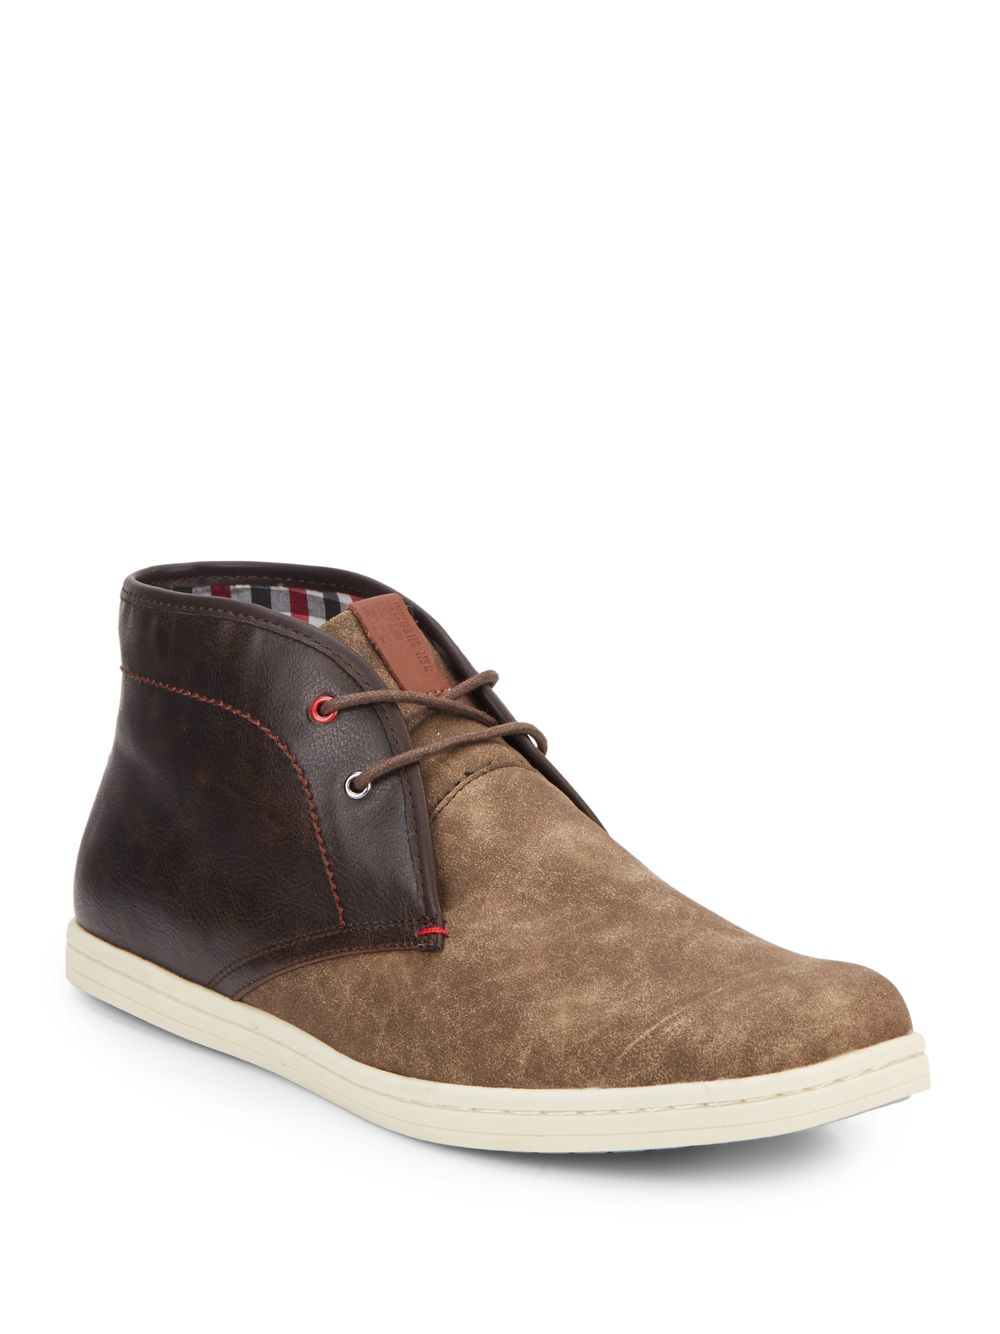 Lyst Ben Sherman Victor Two Tone Leather Chukka Boots In